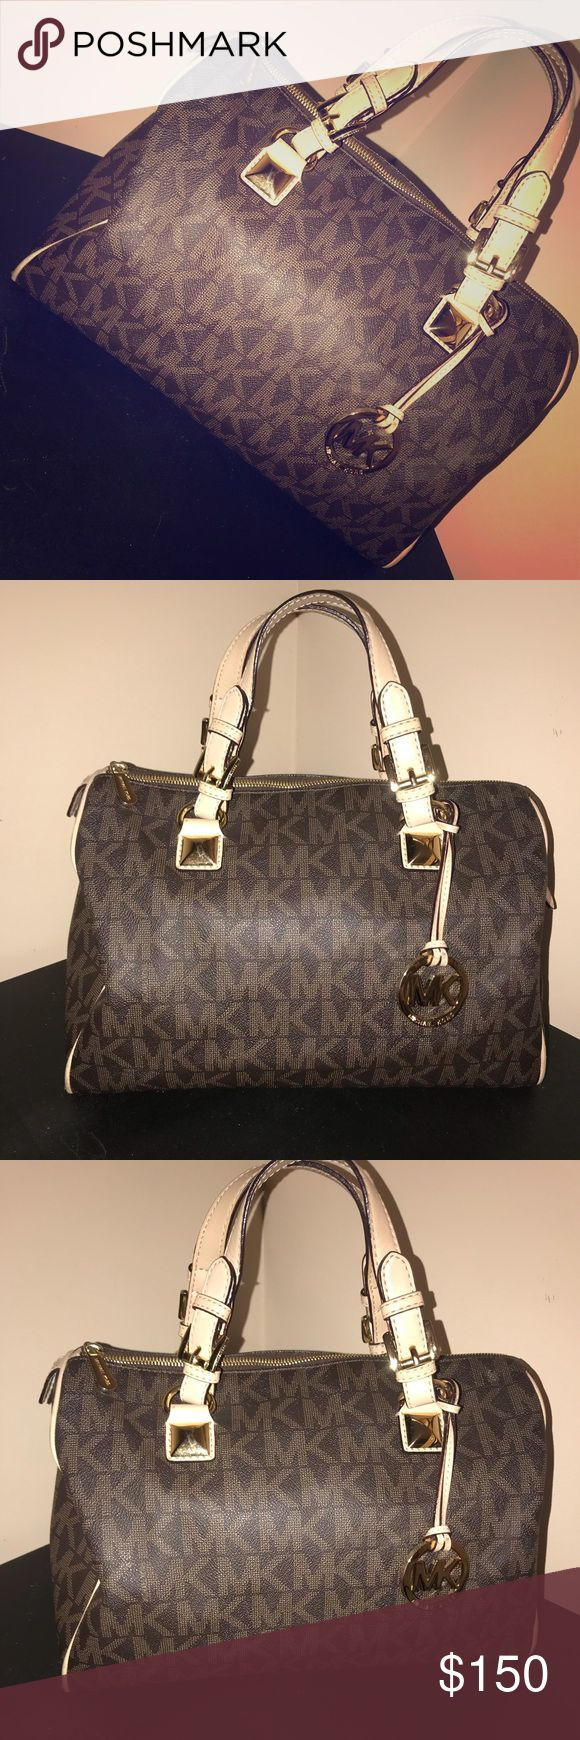 Authentic Michael Kors Bag Michael Kors Large Grayson bag. Outside is in excellent condition. Bottom of the inside lining has some staining (see pics) KORS Michael Kors Bags Satchels